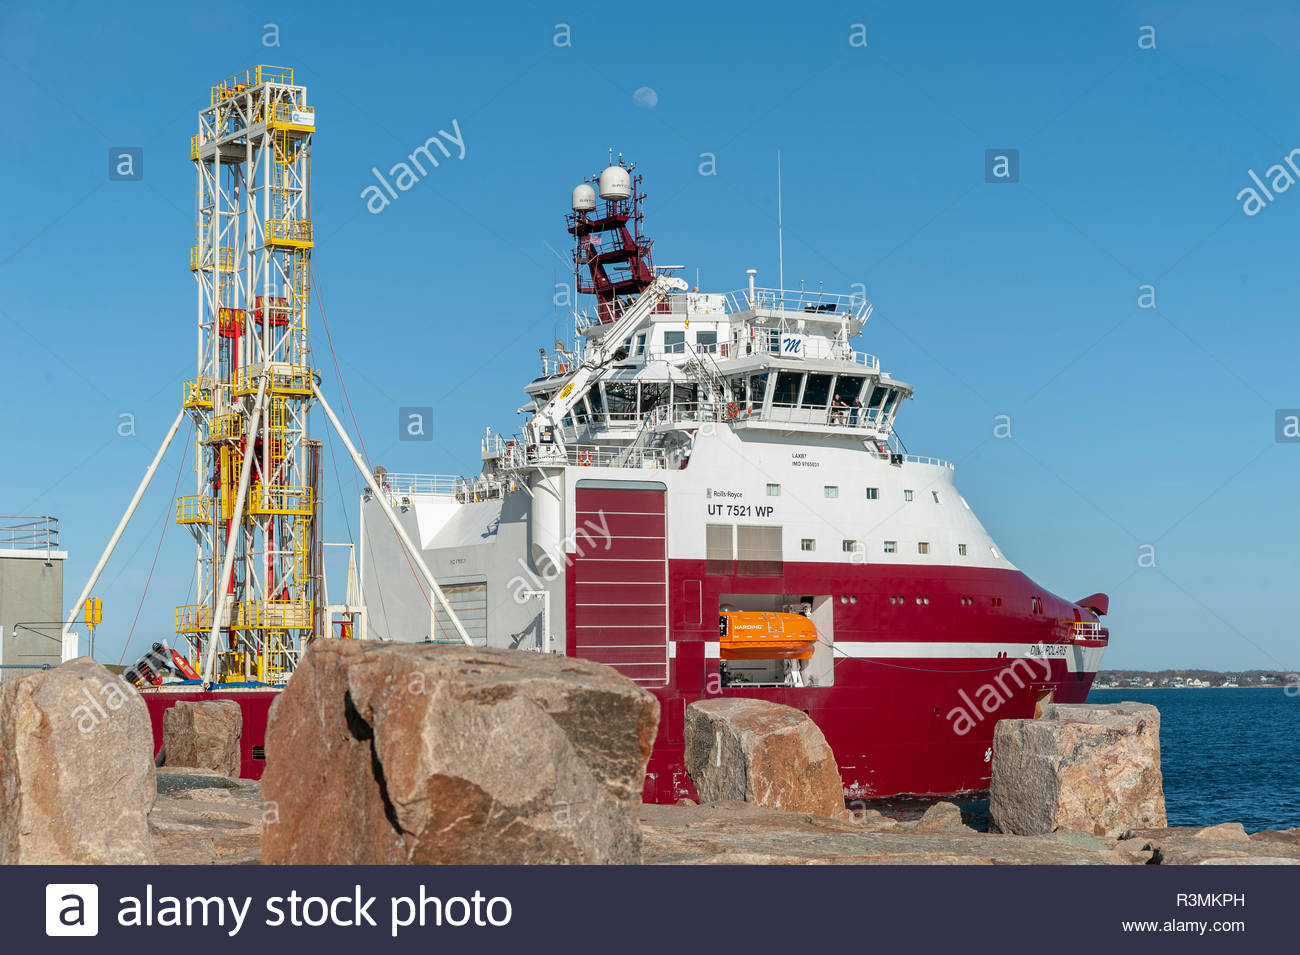 New Bedford, Massachusetts, USA - April 26, 2018: Moon over geotechnical drilling vessel Dina Polaris as it passes through hurricane barrier - Stock Image